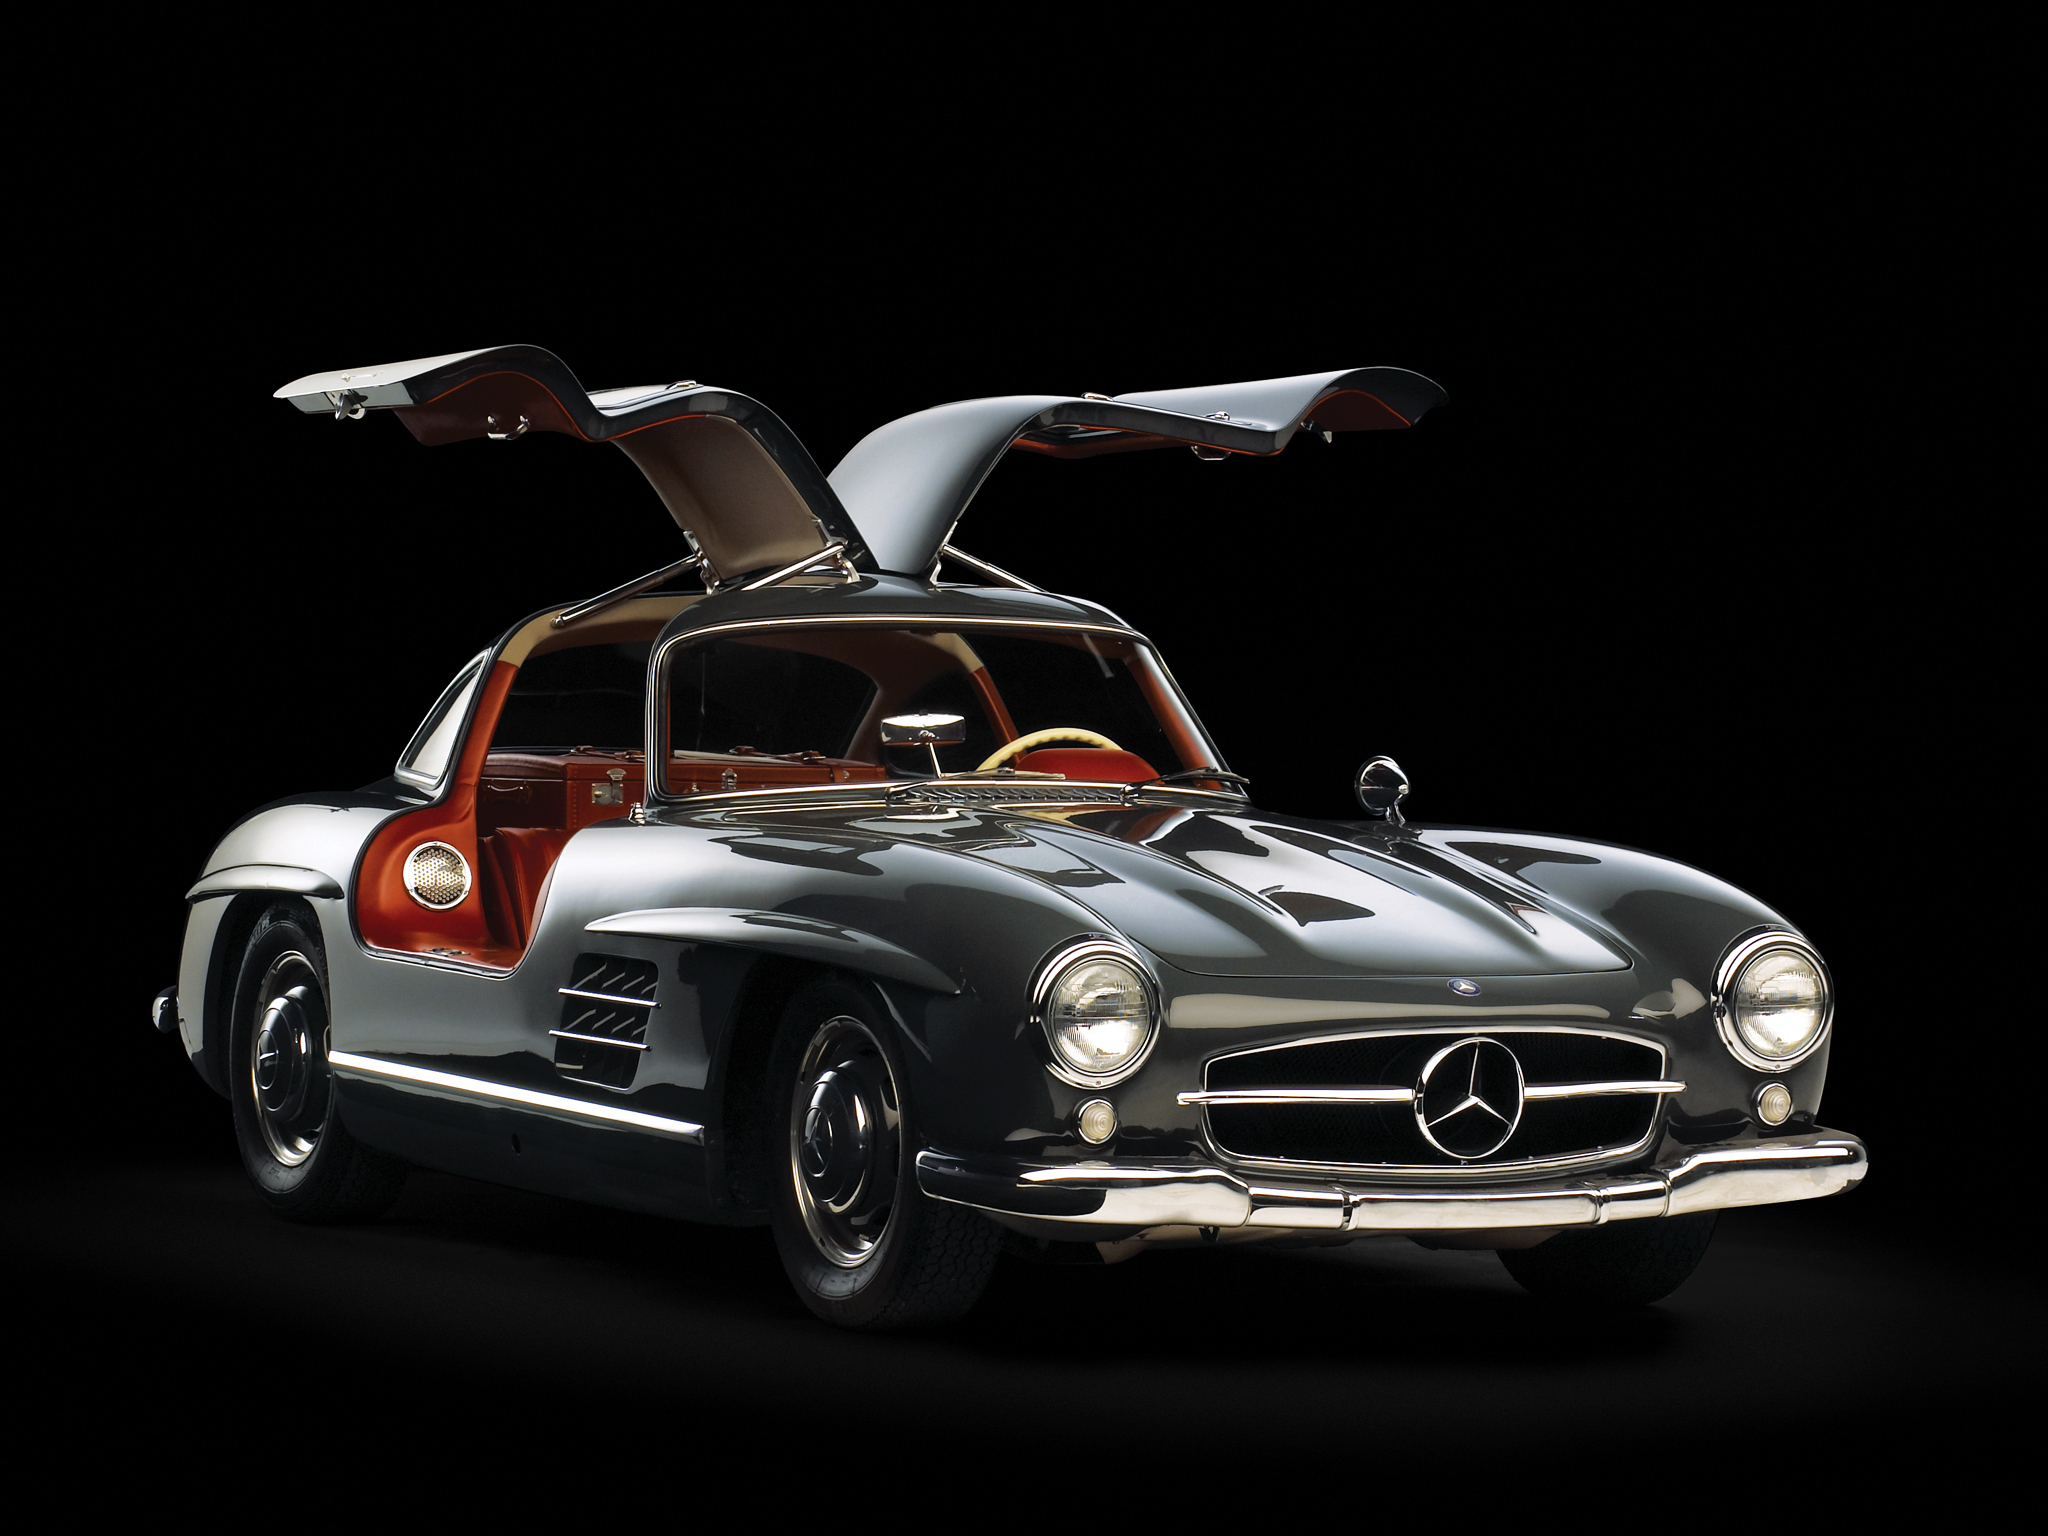 300sl 254 wallpaper - photo #29